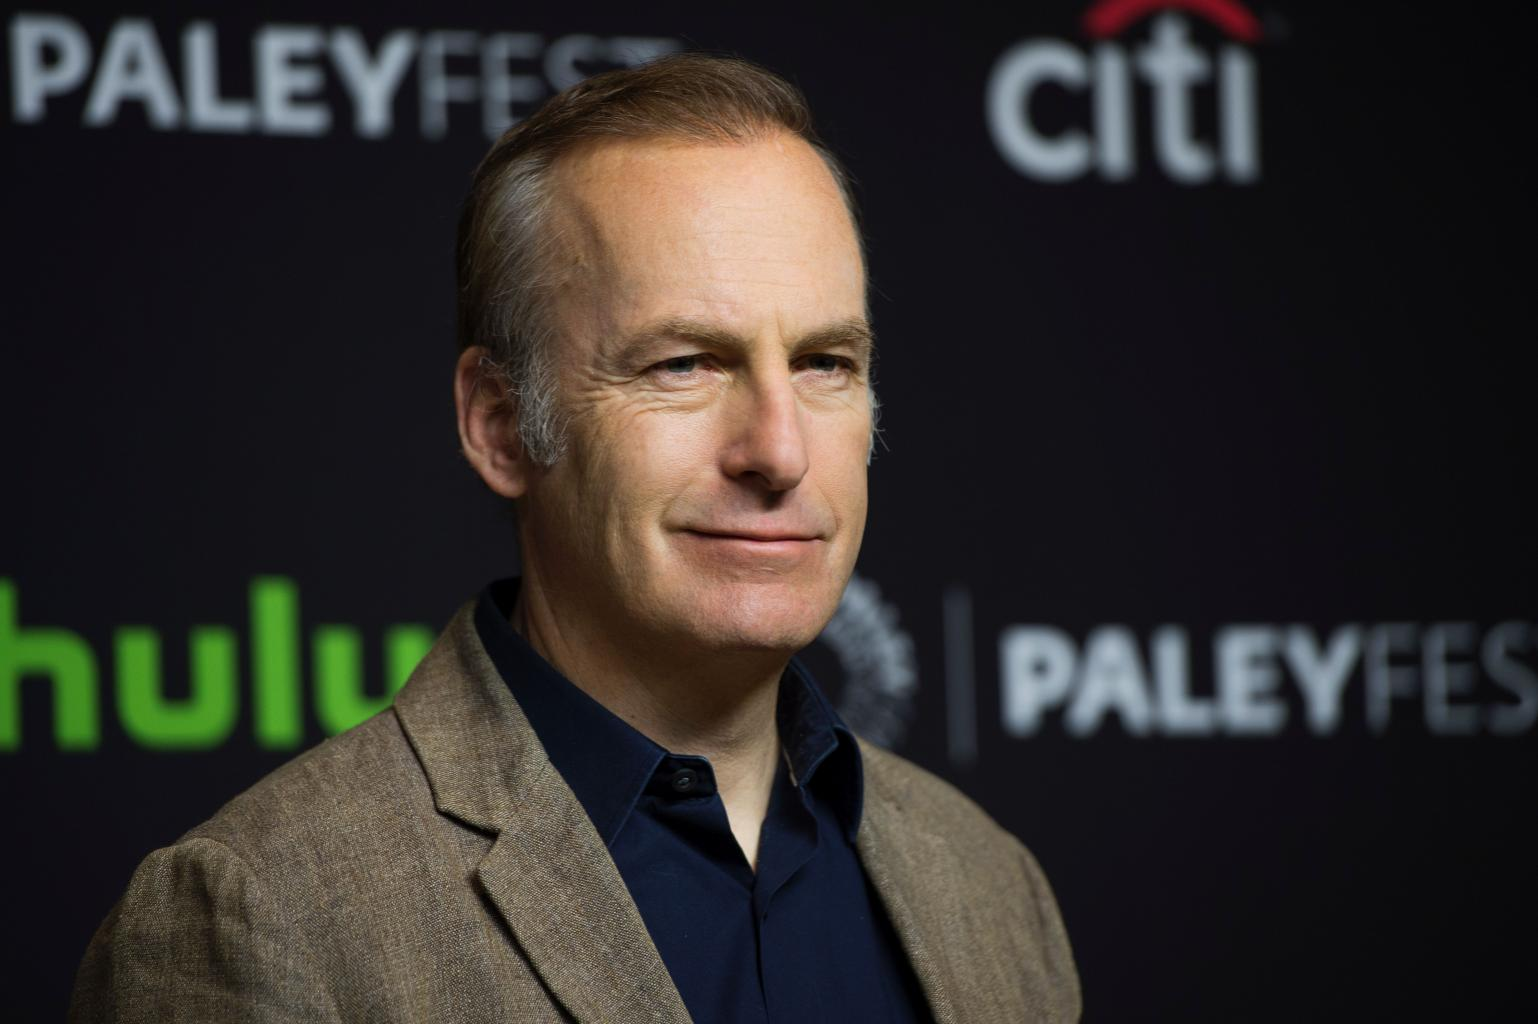 'Better Call Saul' Star Bob Odenkirk Lands Book Deal, Will Write Book Of Essays About His Life In Comedy